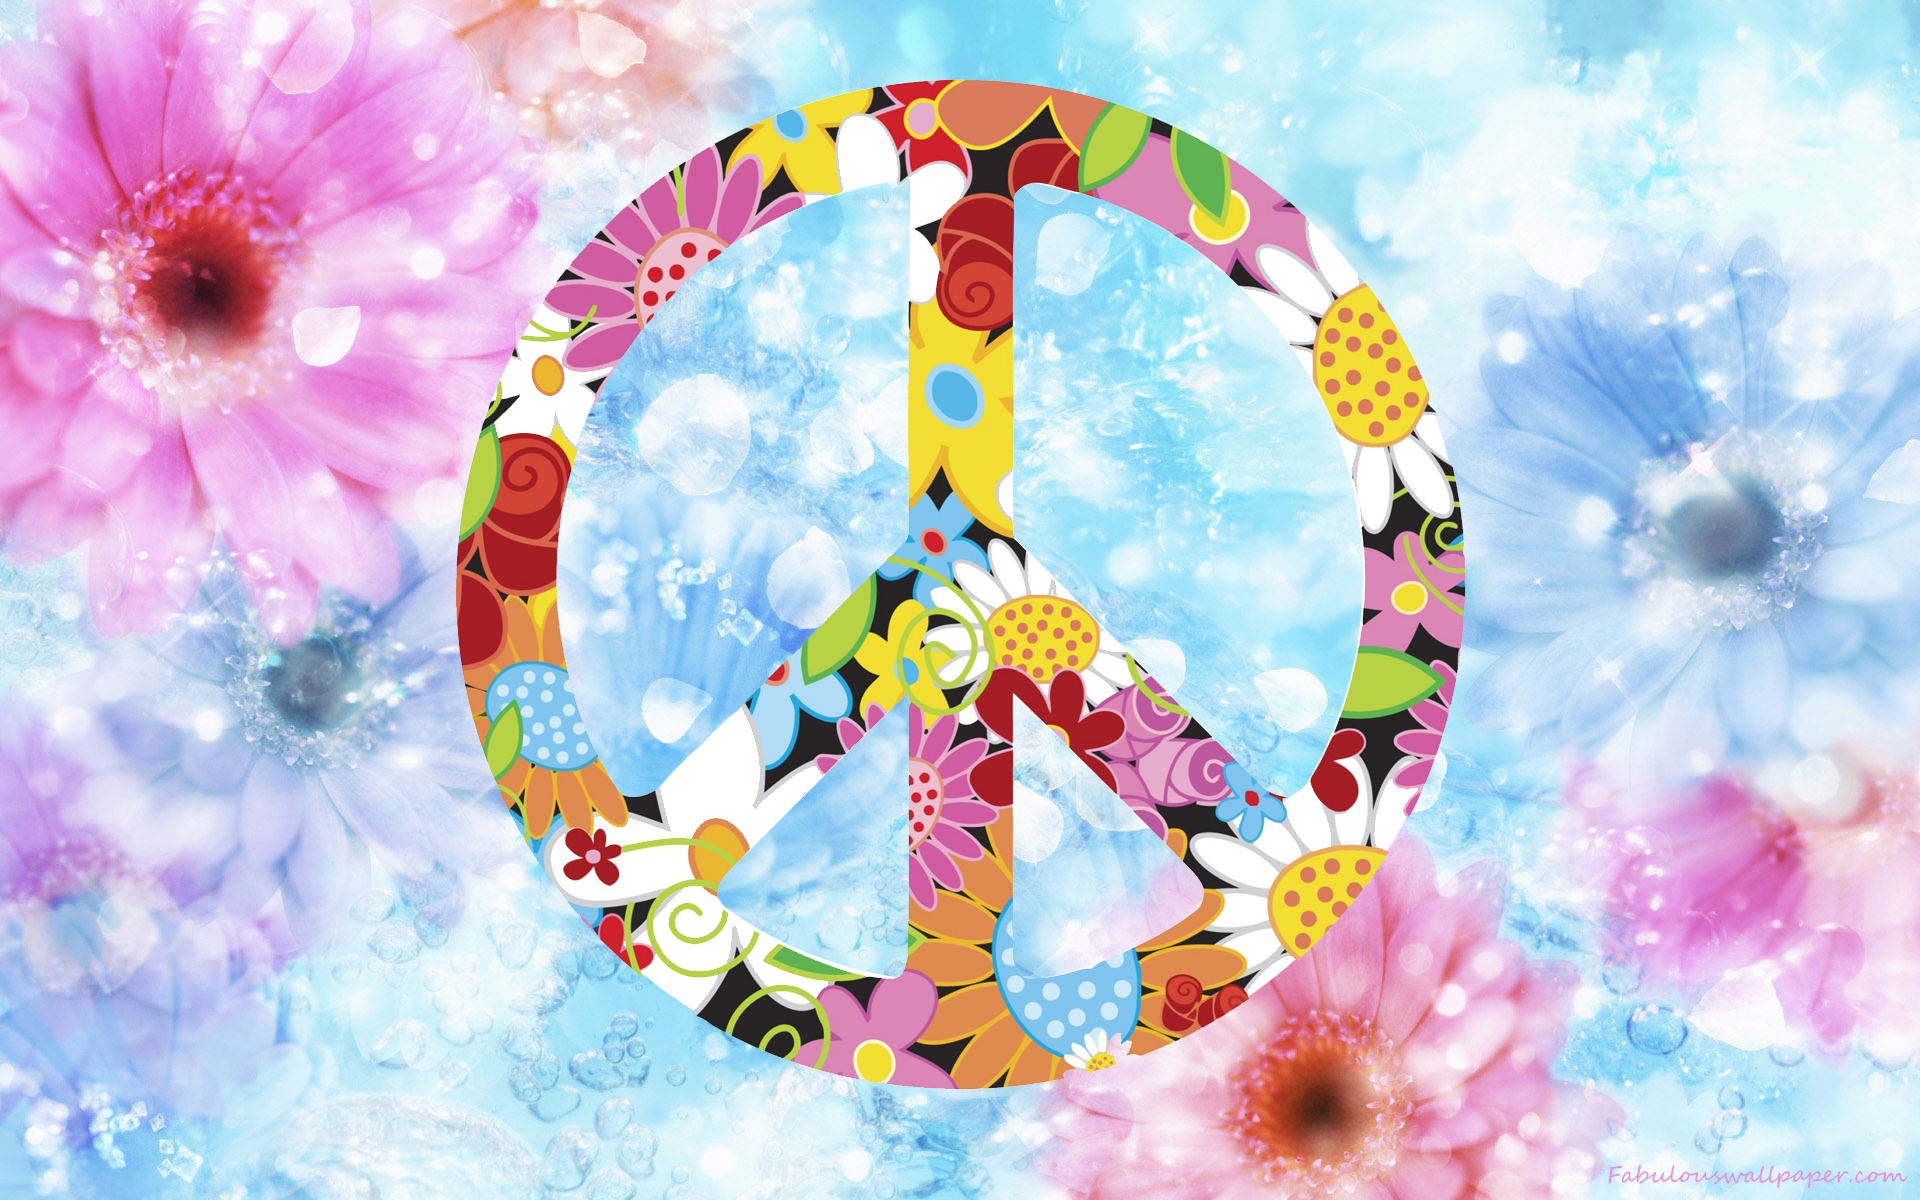 To download click on Peace Day Flowers HD Background then choose save 1920x1200